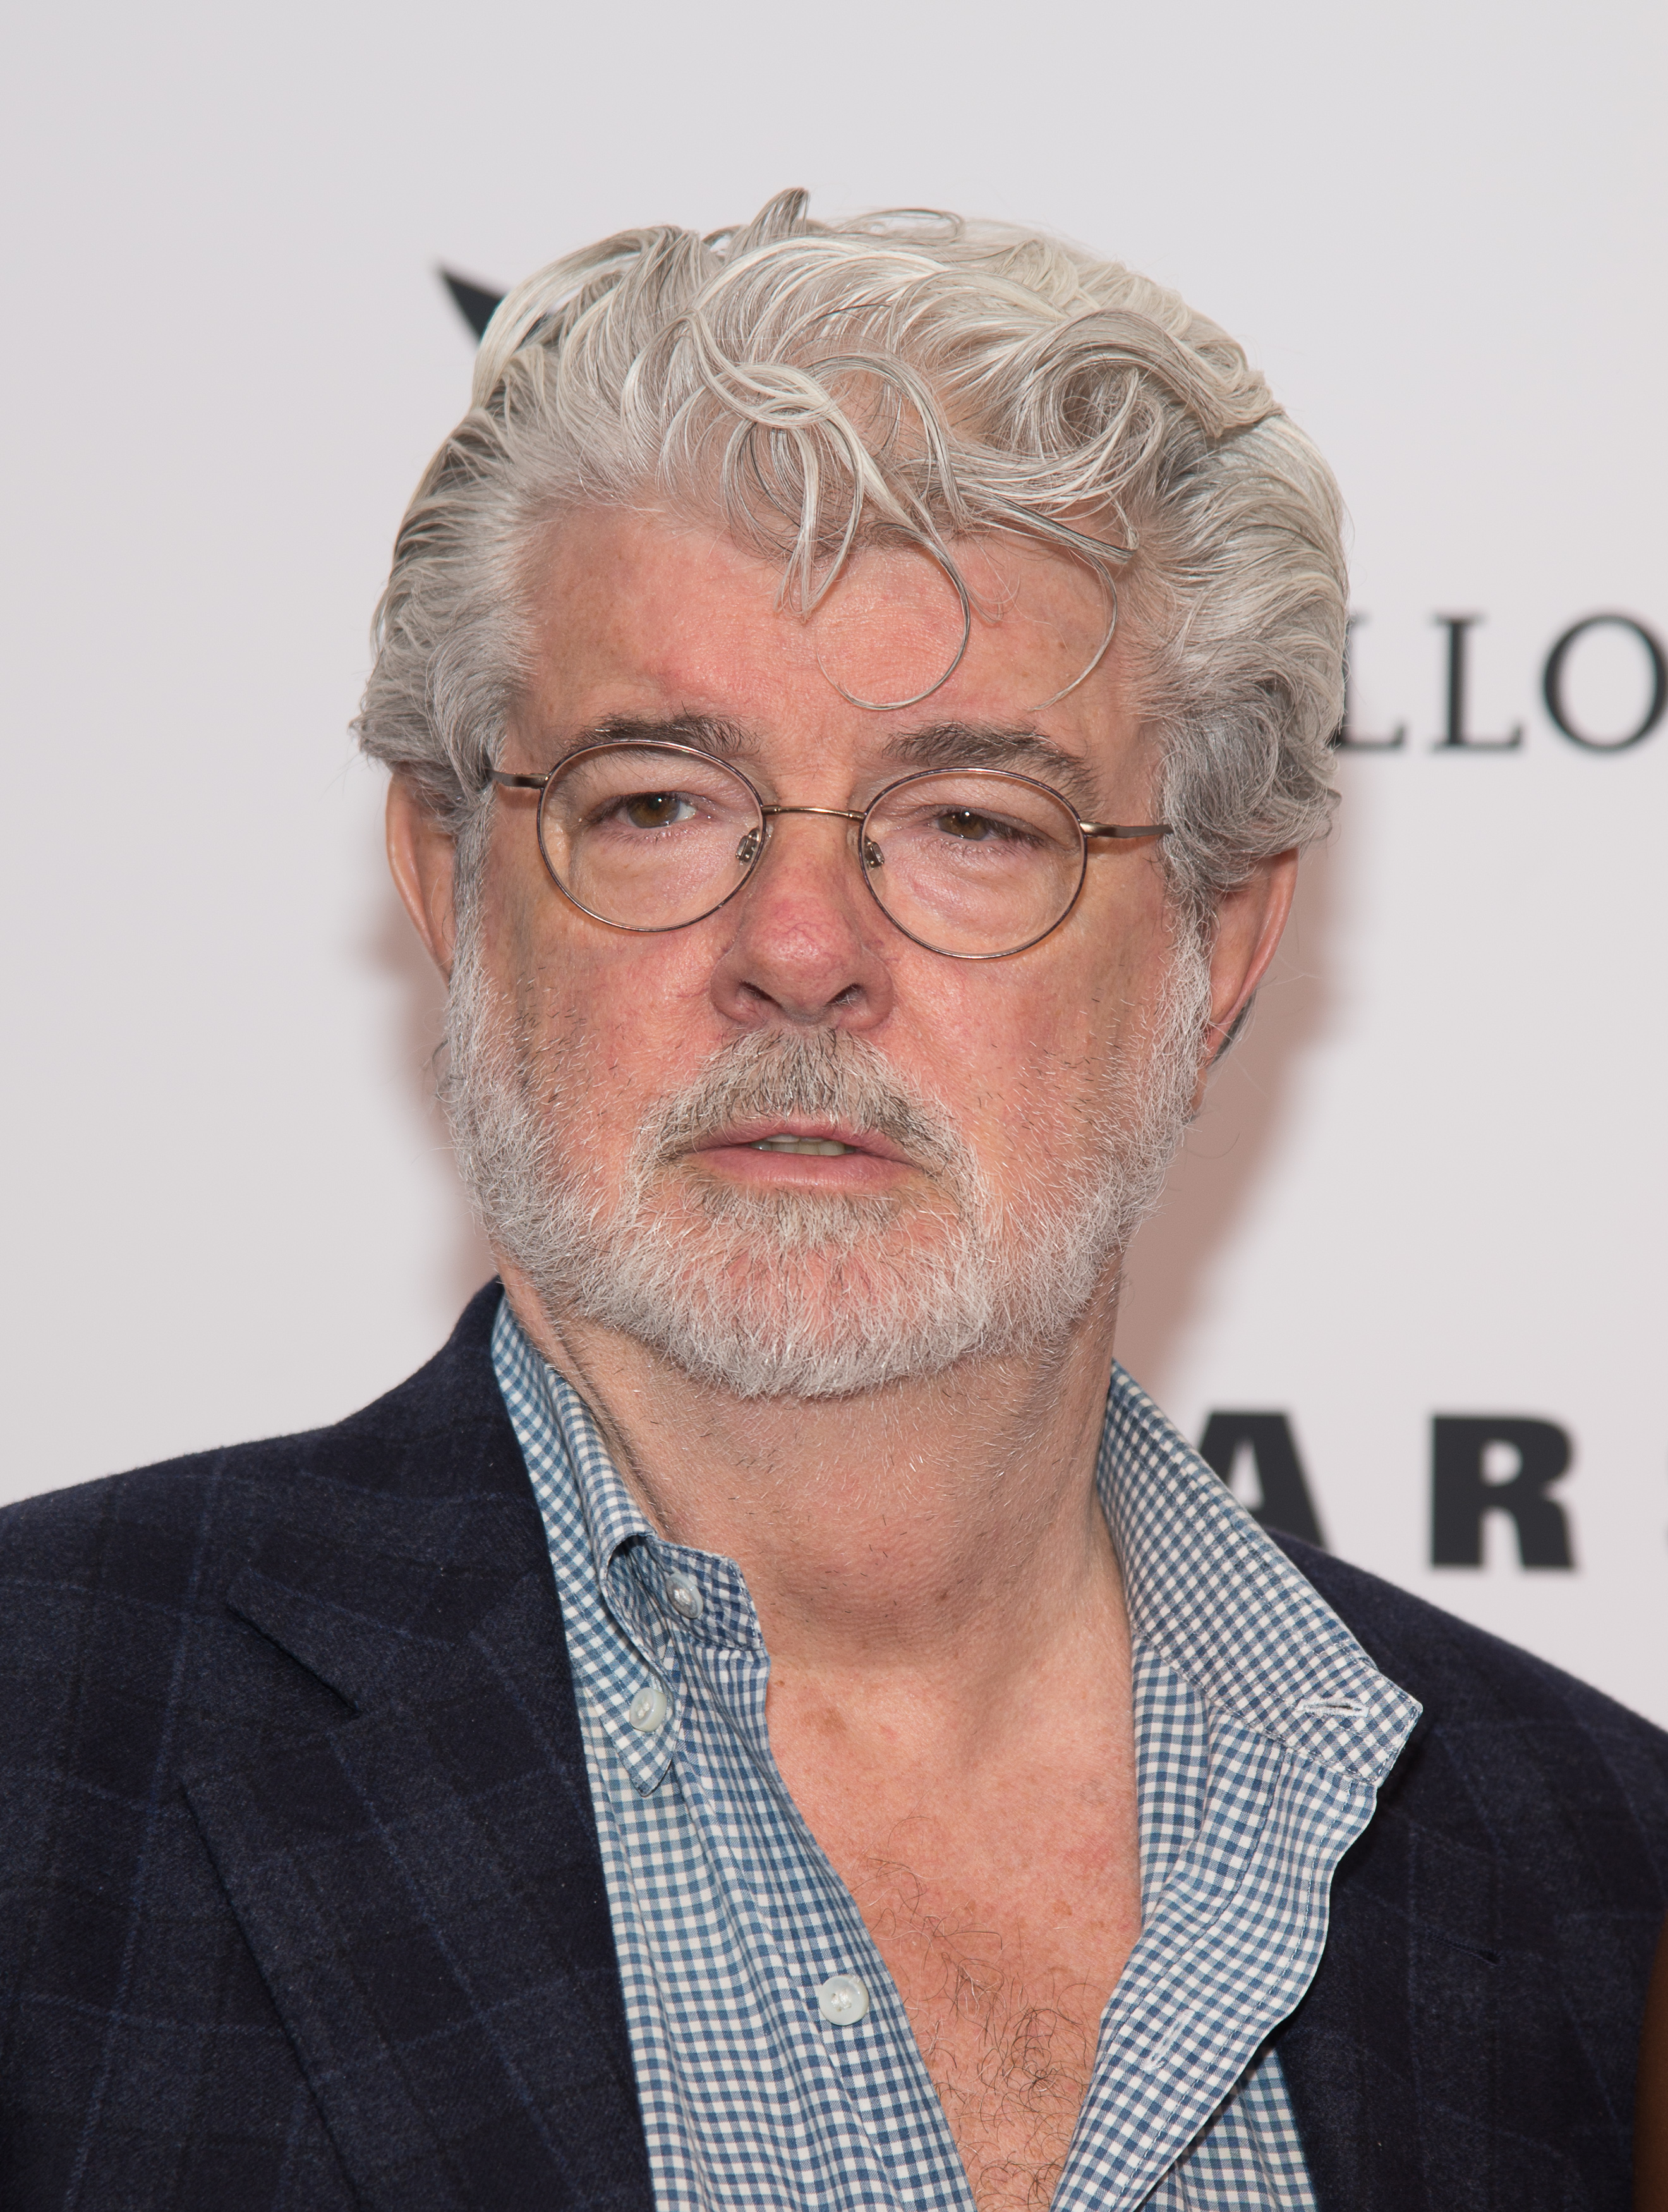 George Lucas attends the Apollo Spring Gala and 80th Anniversary Celebration at The Apollo Theater on June 10, 2014 in New York City.